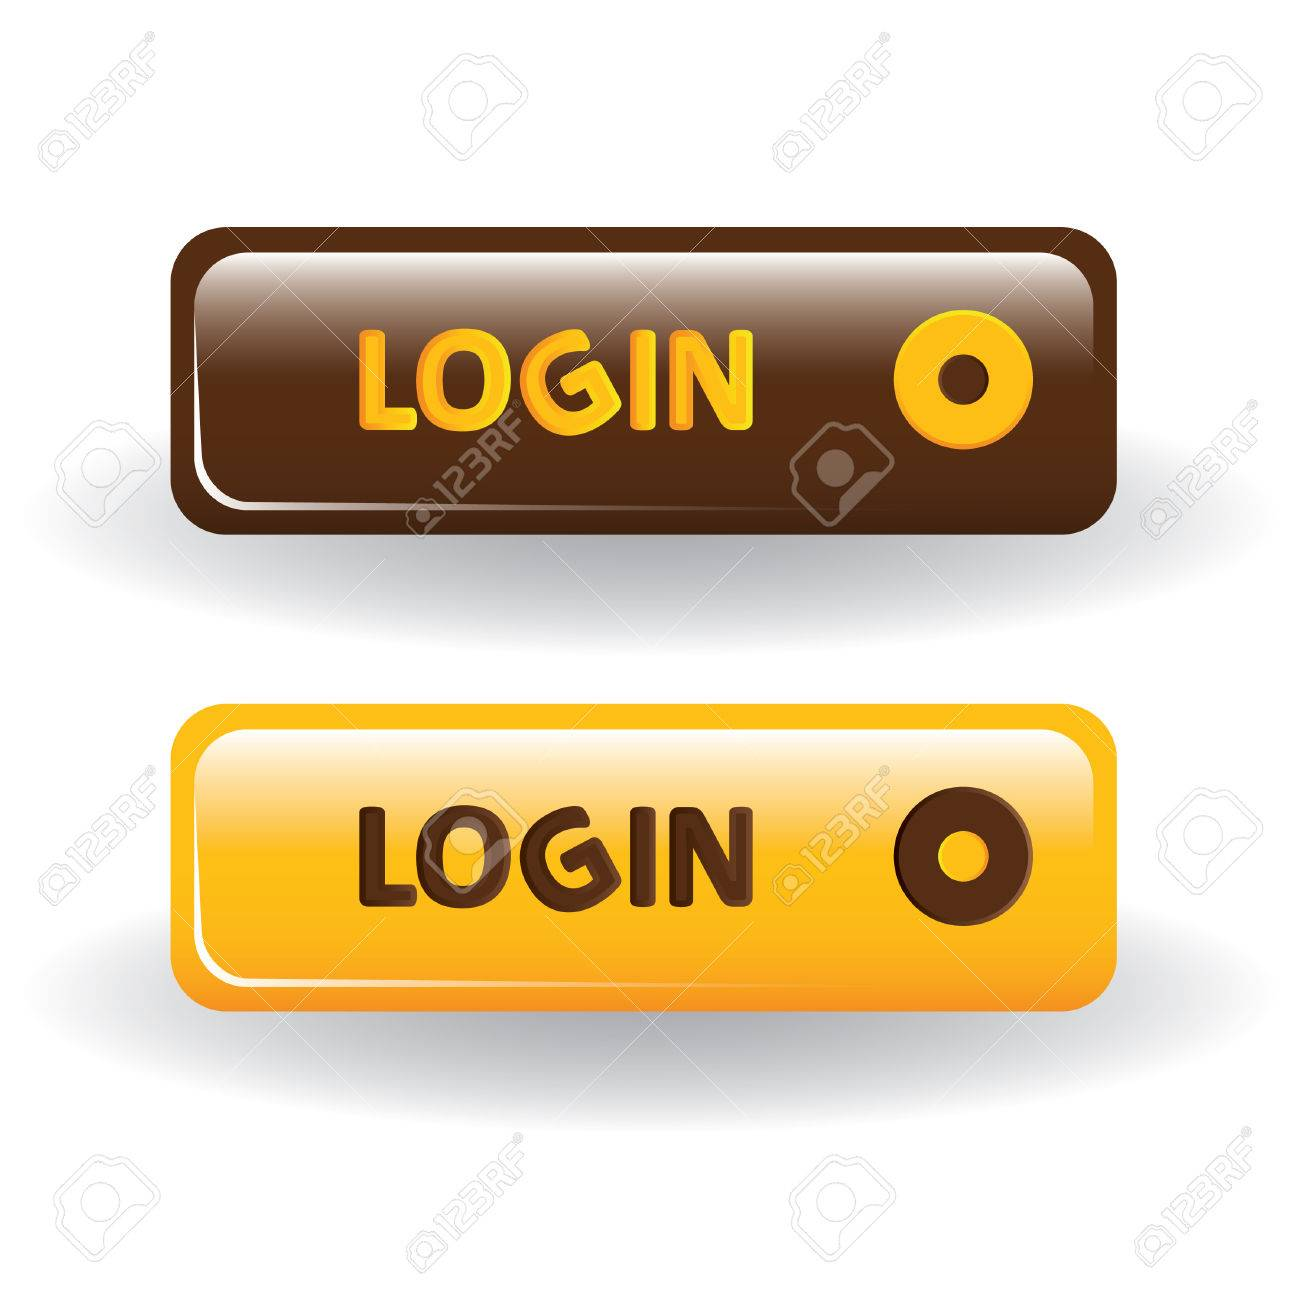 Login Buttons Icons Login Buttons Brown And